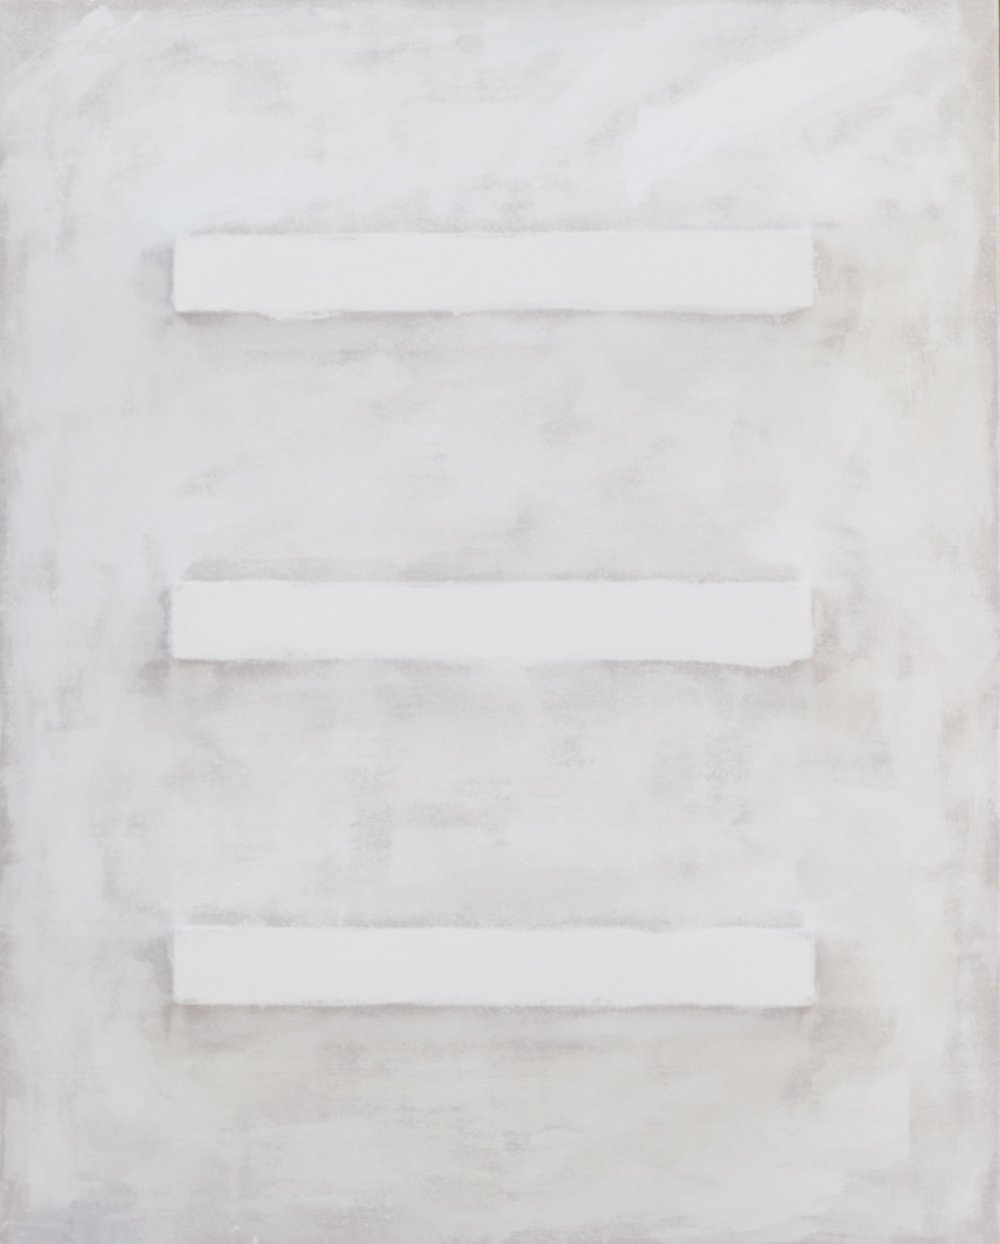 There's a Block in the Void (2786) , 2017, gesso on shaped canvas, 60 x 48 x 4 in. *